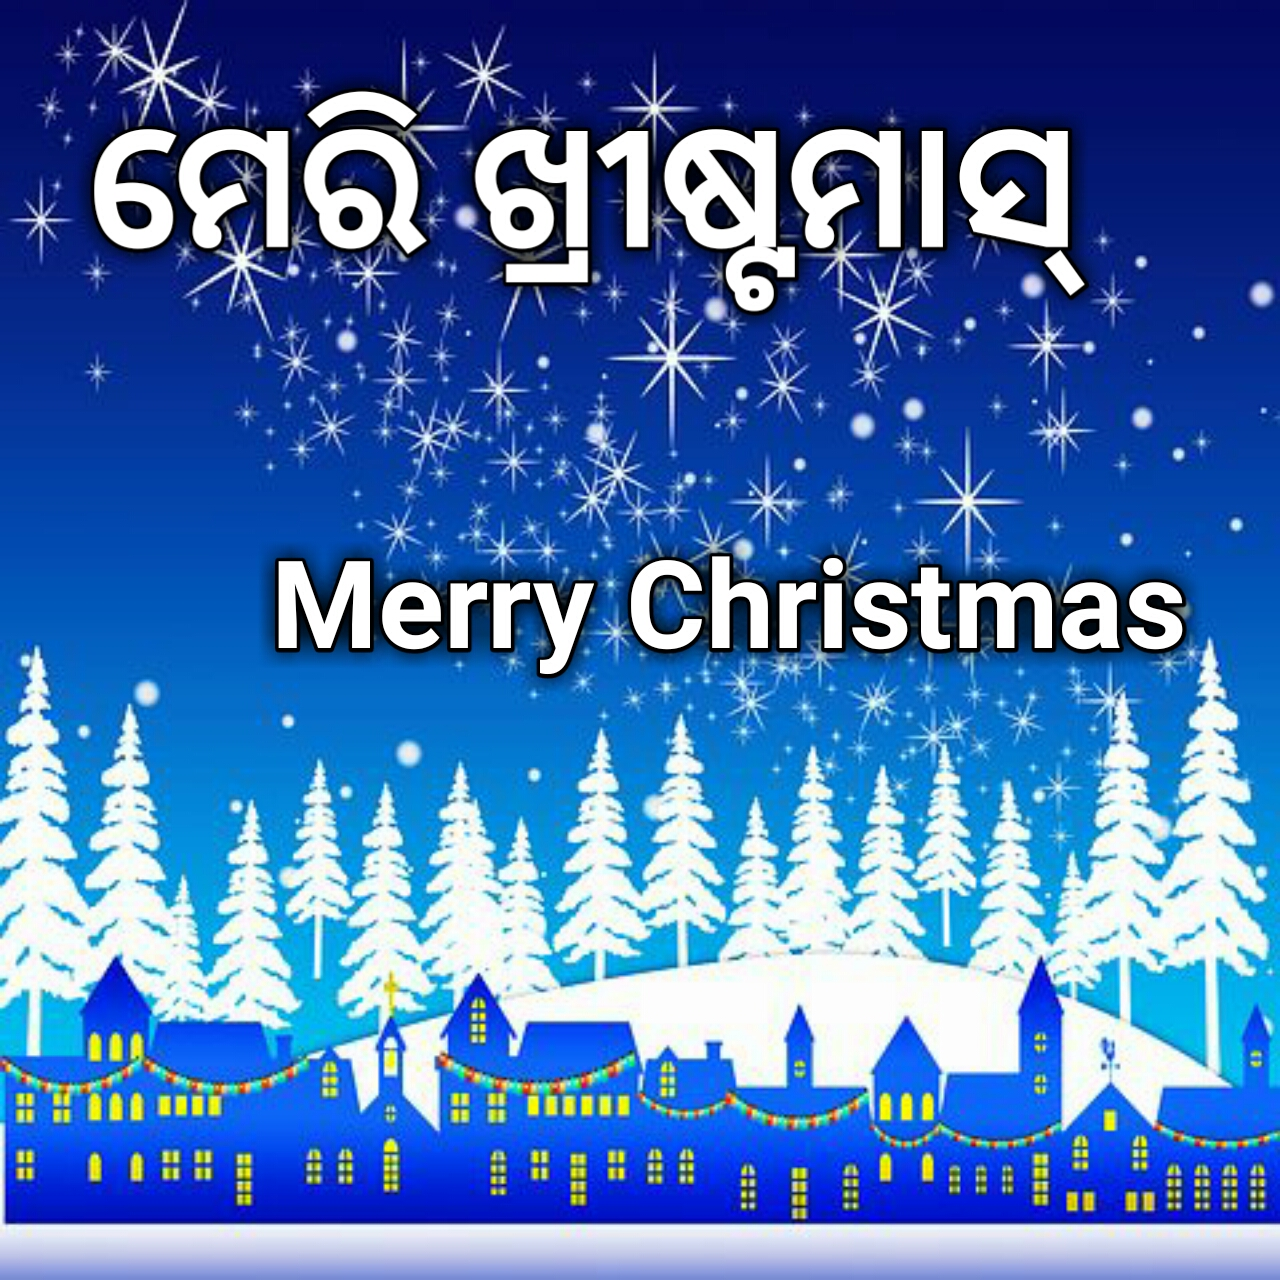 Merry Christmas 2018 sms in odia